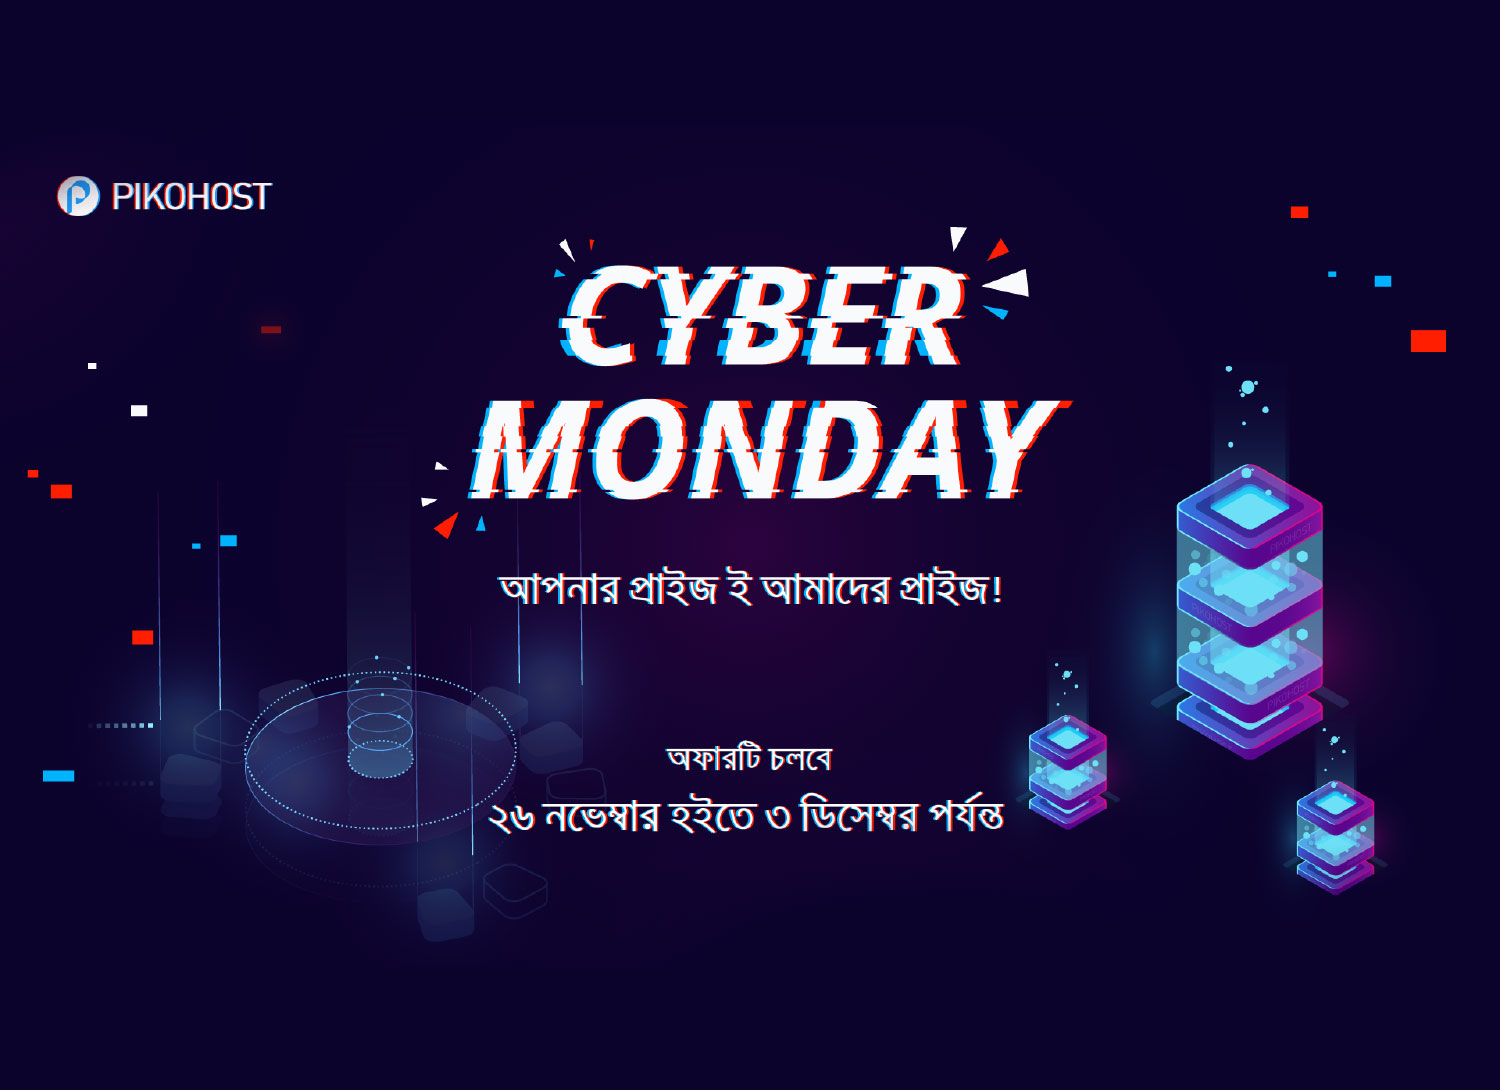 Cyber Monday Biggest Sale Of The Year